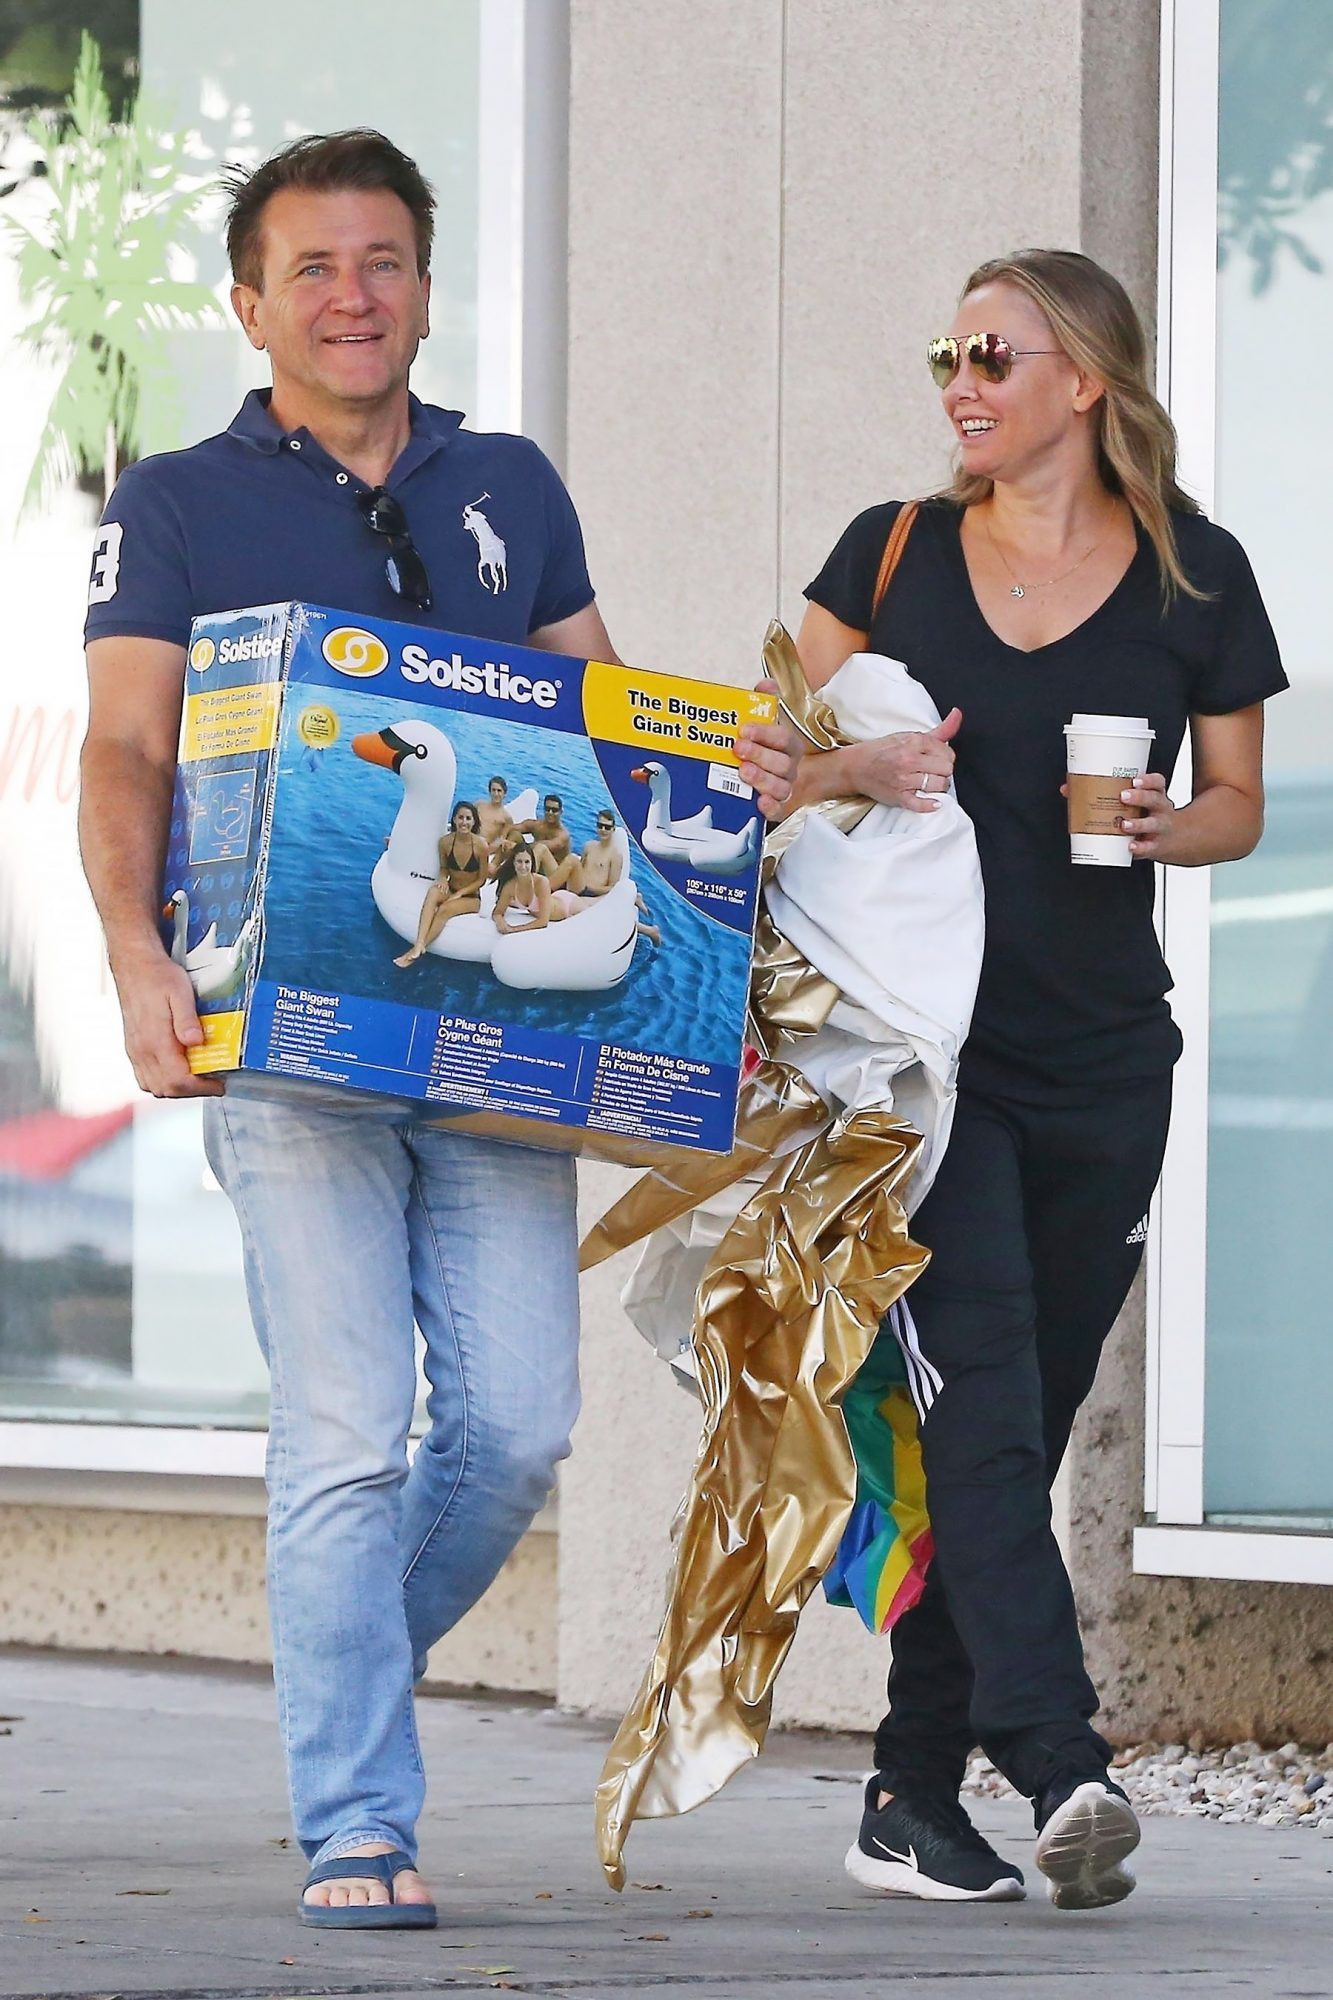 *EXCLUSIVE* Kym Johnson and Robert Herjavec shop for pool floats at Kitson